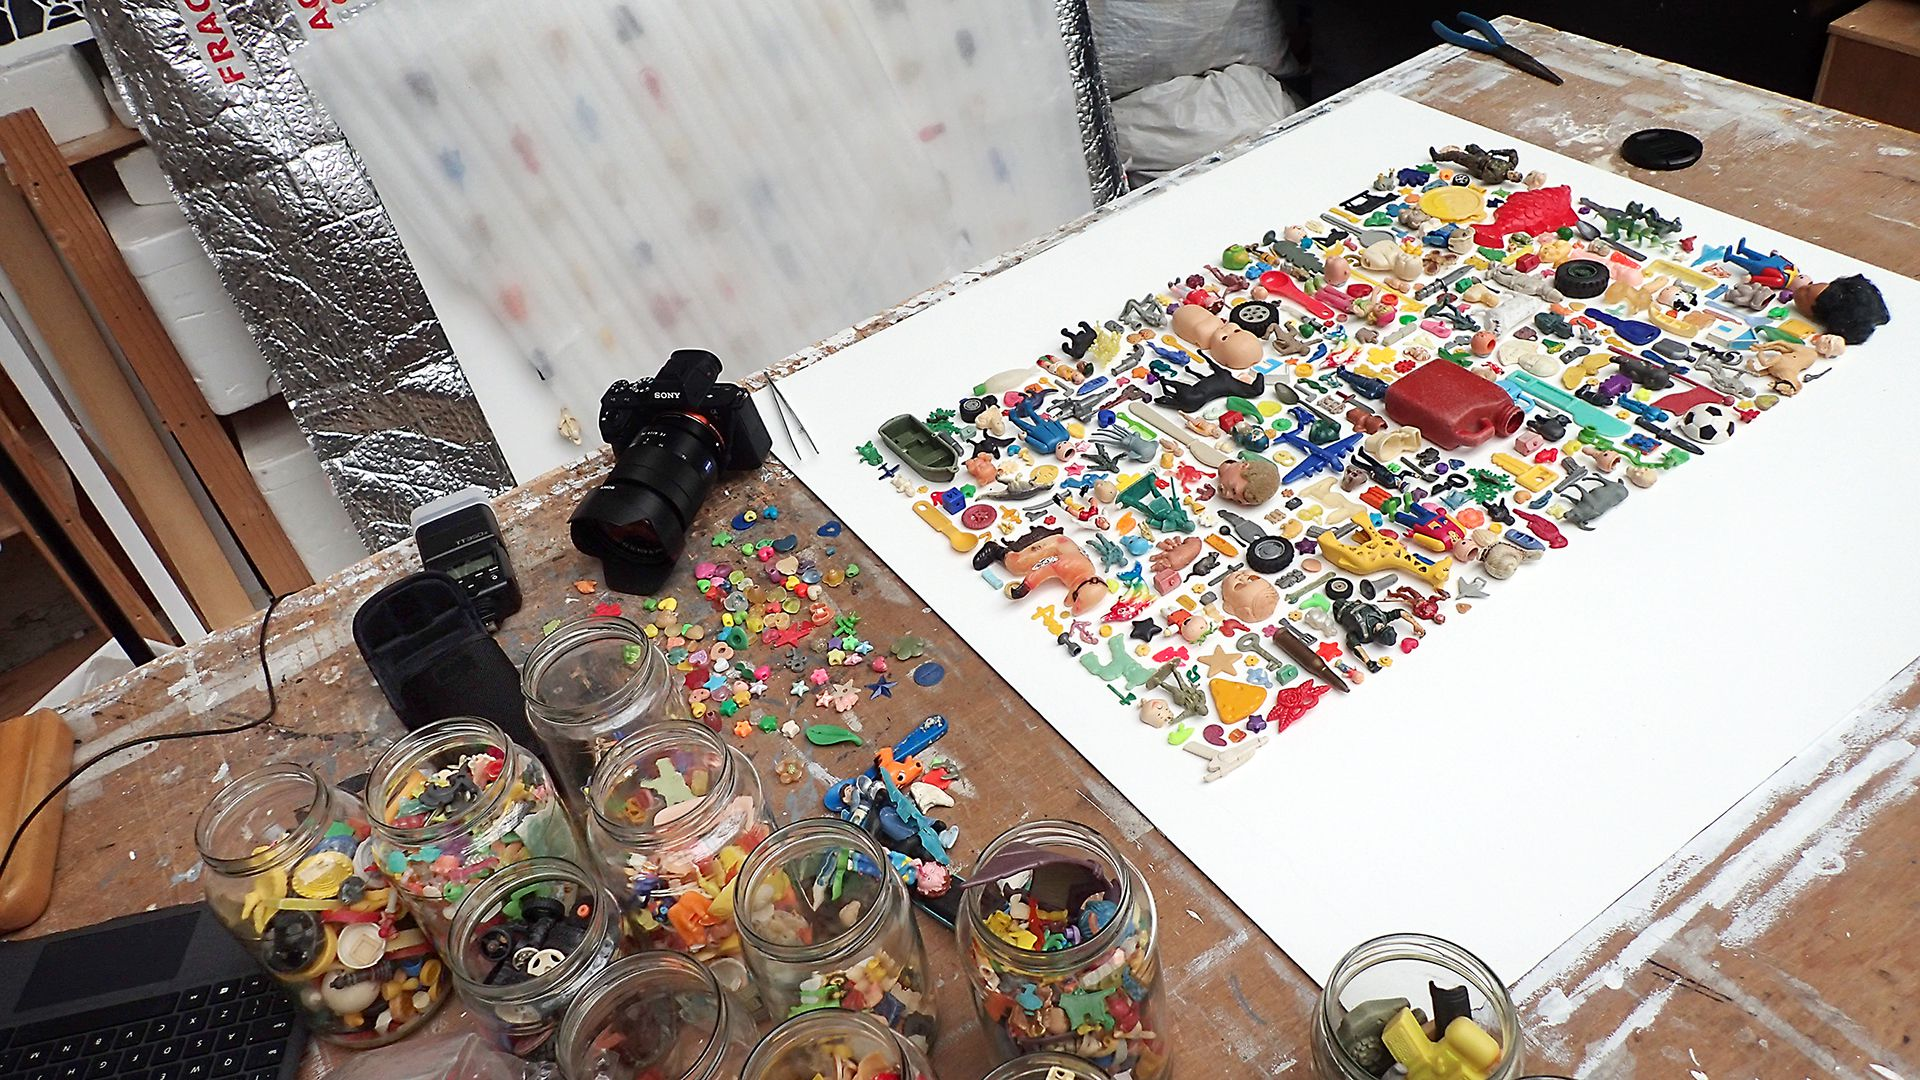 Images of artist's workspace with many glass jars holding assorted small plastic items like toys and beads. Next to it, a canvas with plastic objects arranged in a colorful montage